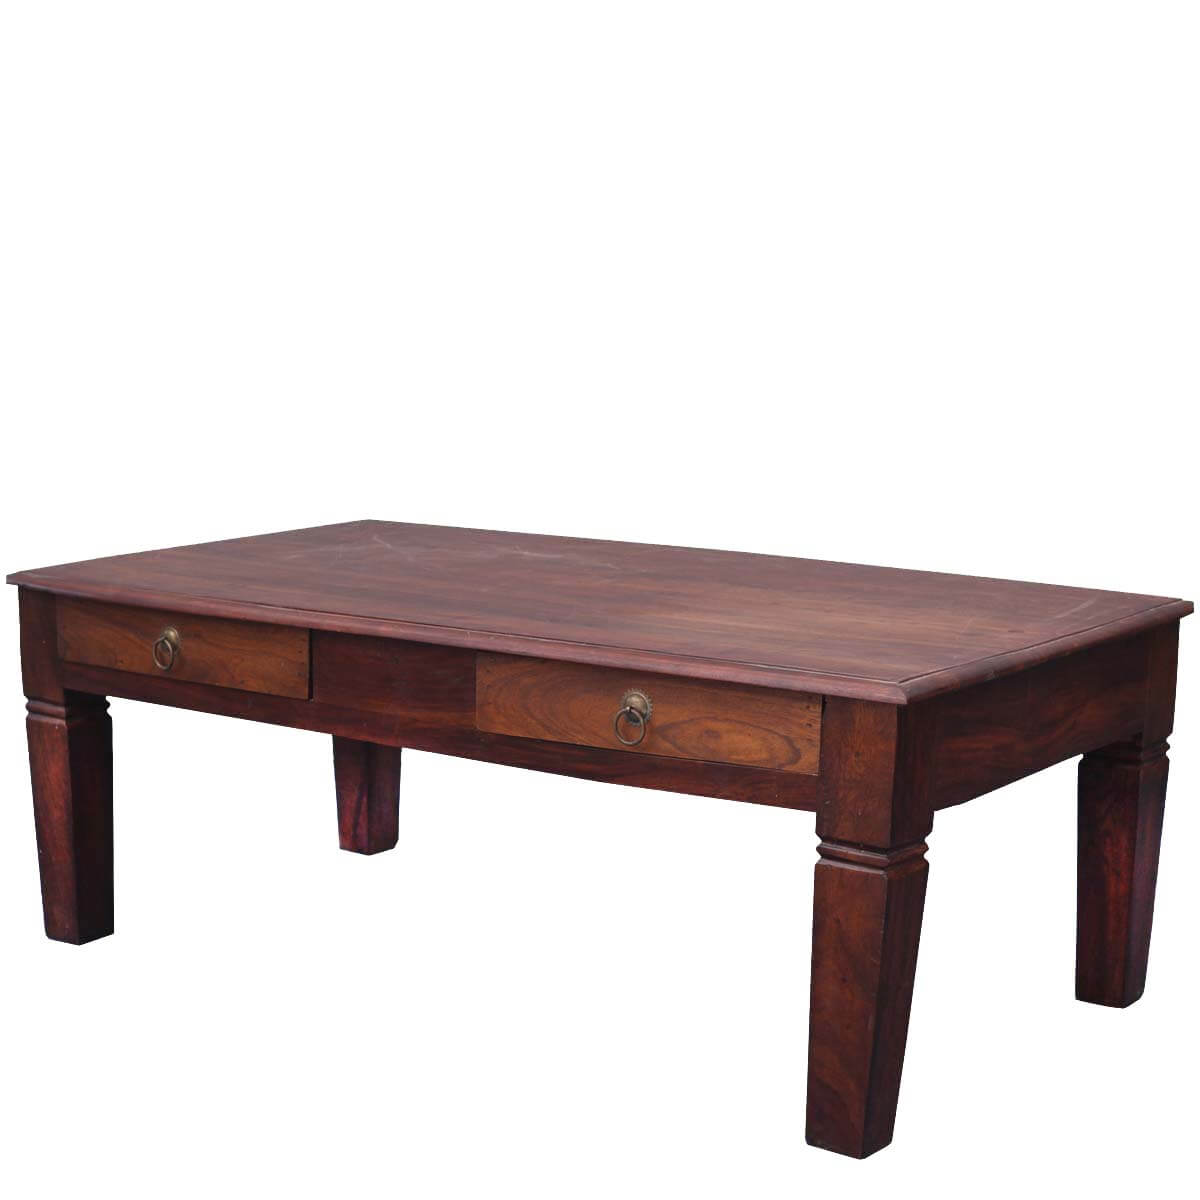 Superb img of  Craftsman Collection Solid Wood Rustic Coffee Table w Storage Drawers with #B27F19 color and 1200x1200 pixels